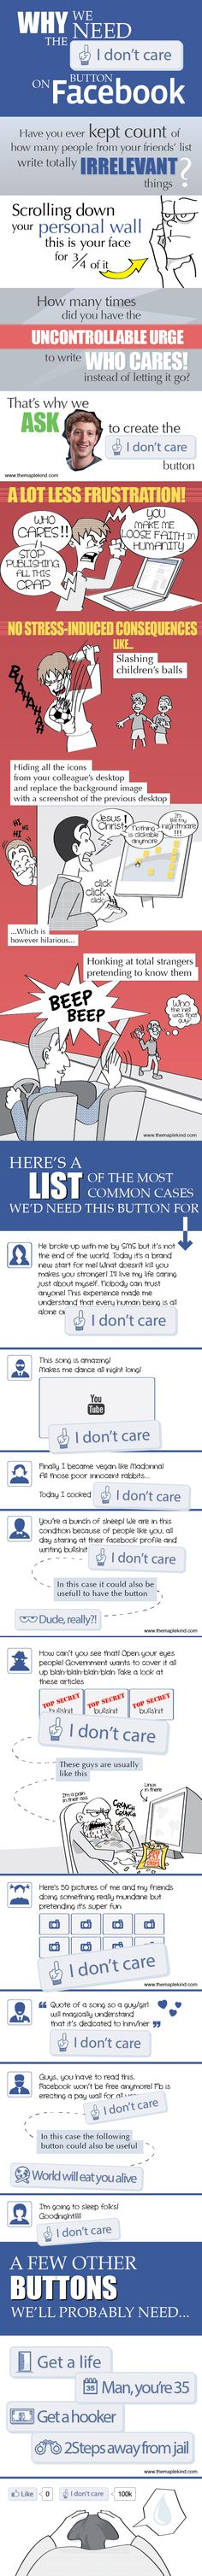 Why we need the I don't care button on Facebook #infografia #infographic #socialmedia